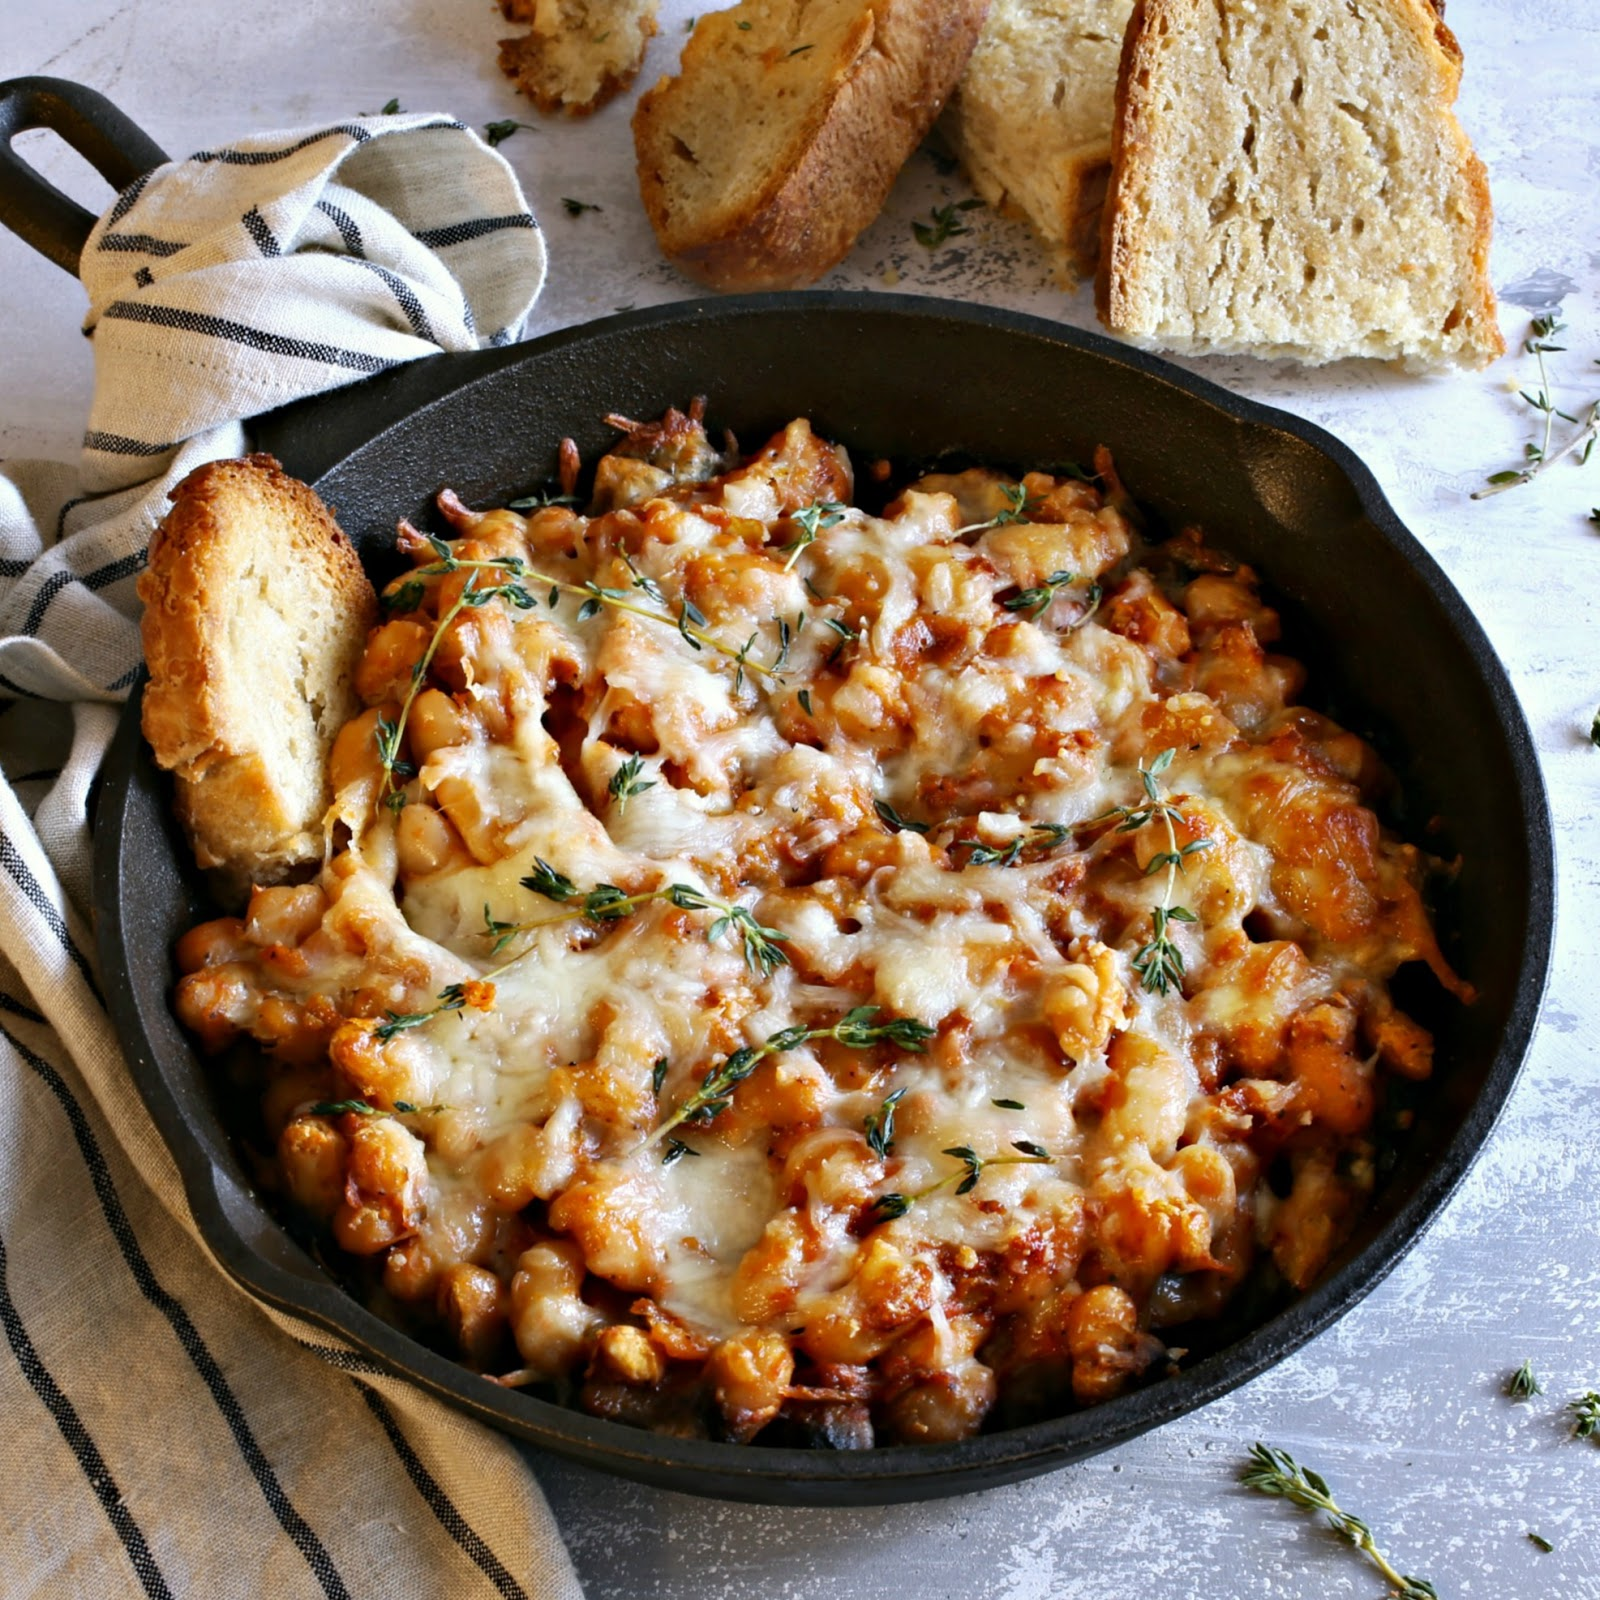 Recipe for white beans cooked in tomato and chicken stock, then baked with Parmesan and mozzarella cheese.